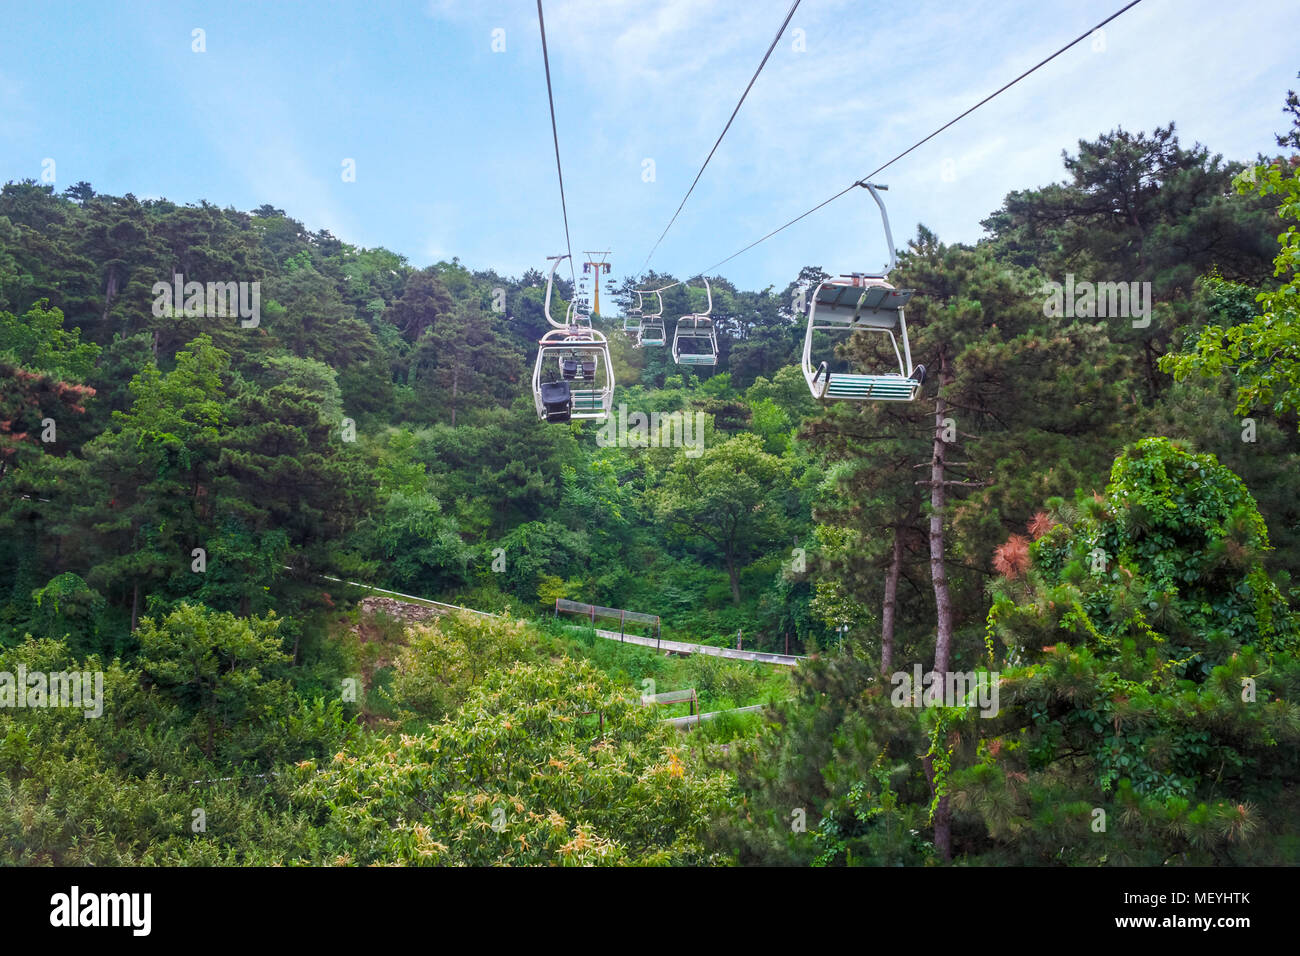 Cableway Up To The Great Wall At Mutianyu. China. - Stock Image